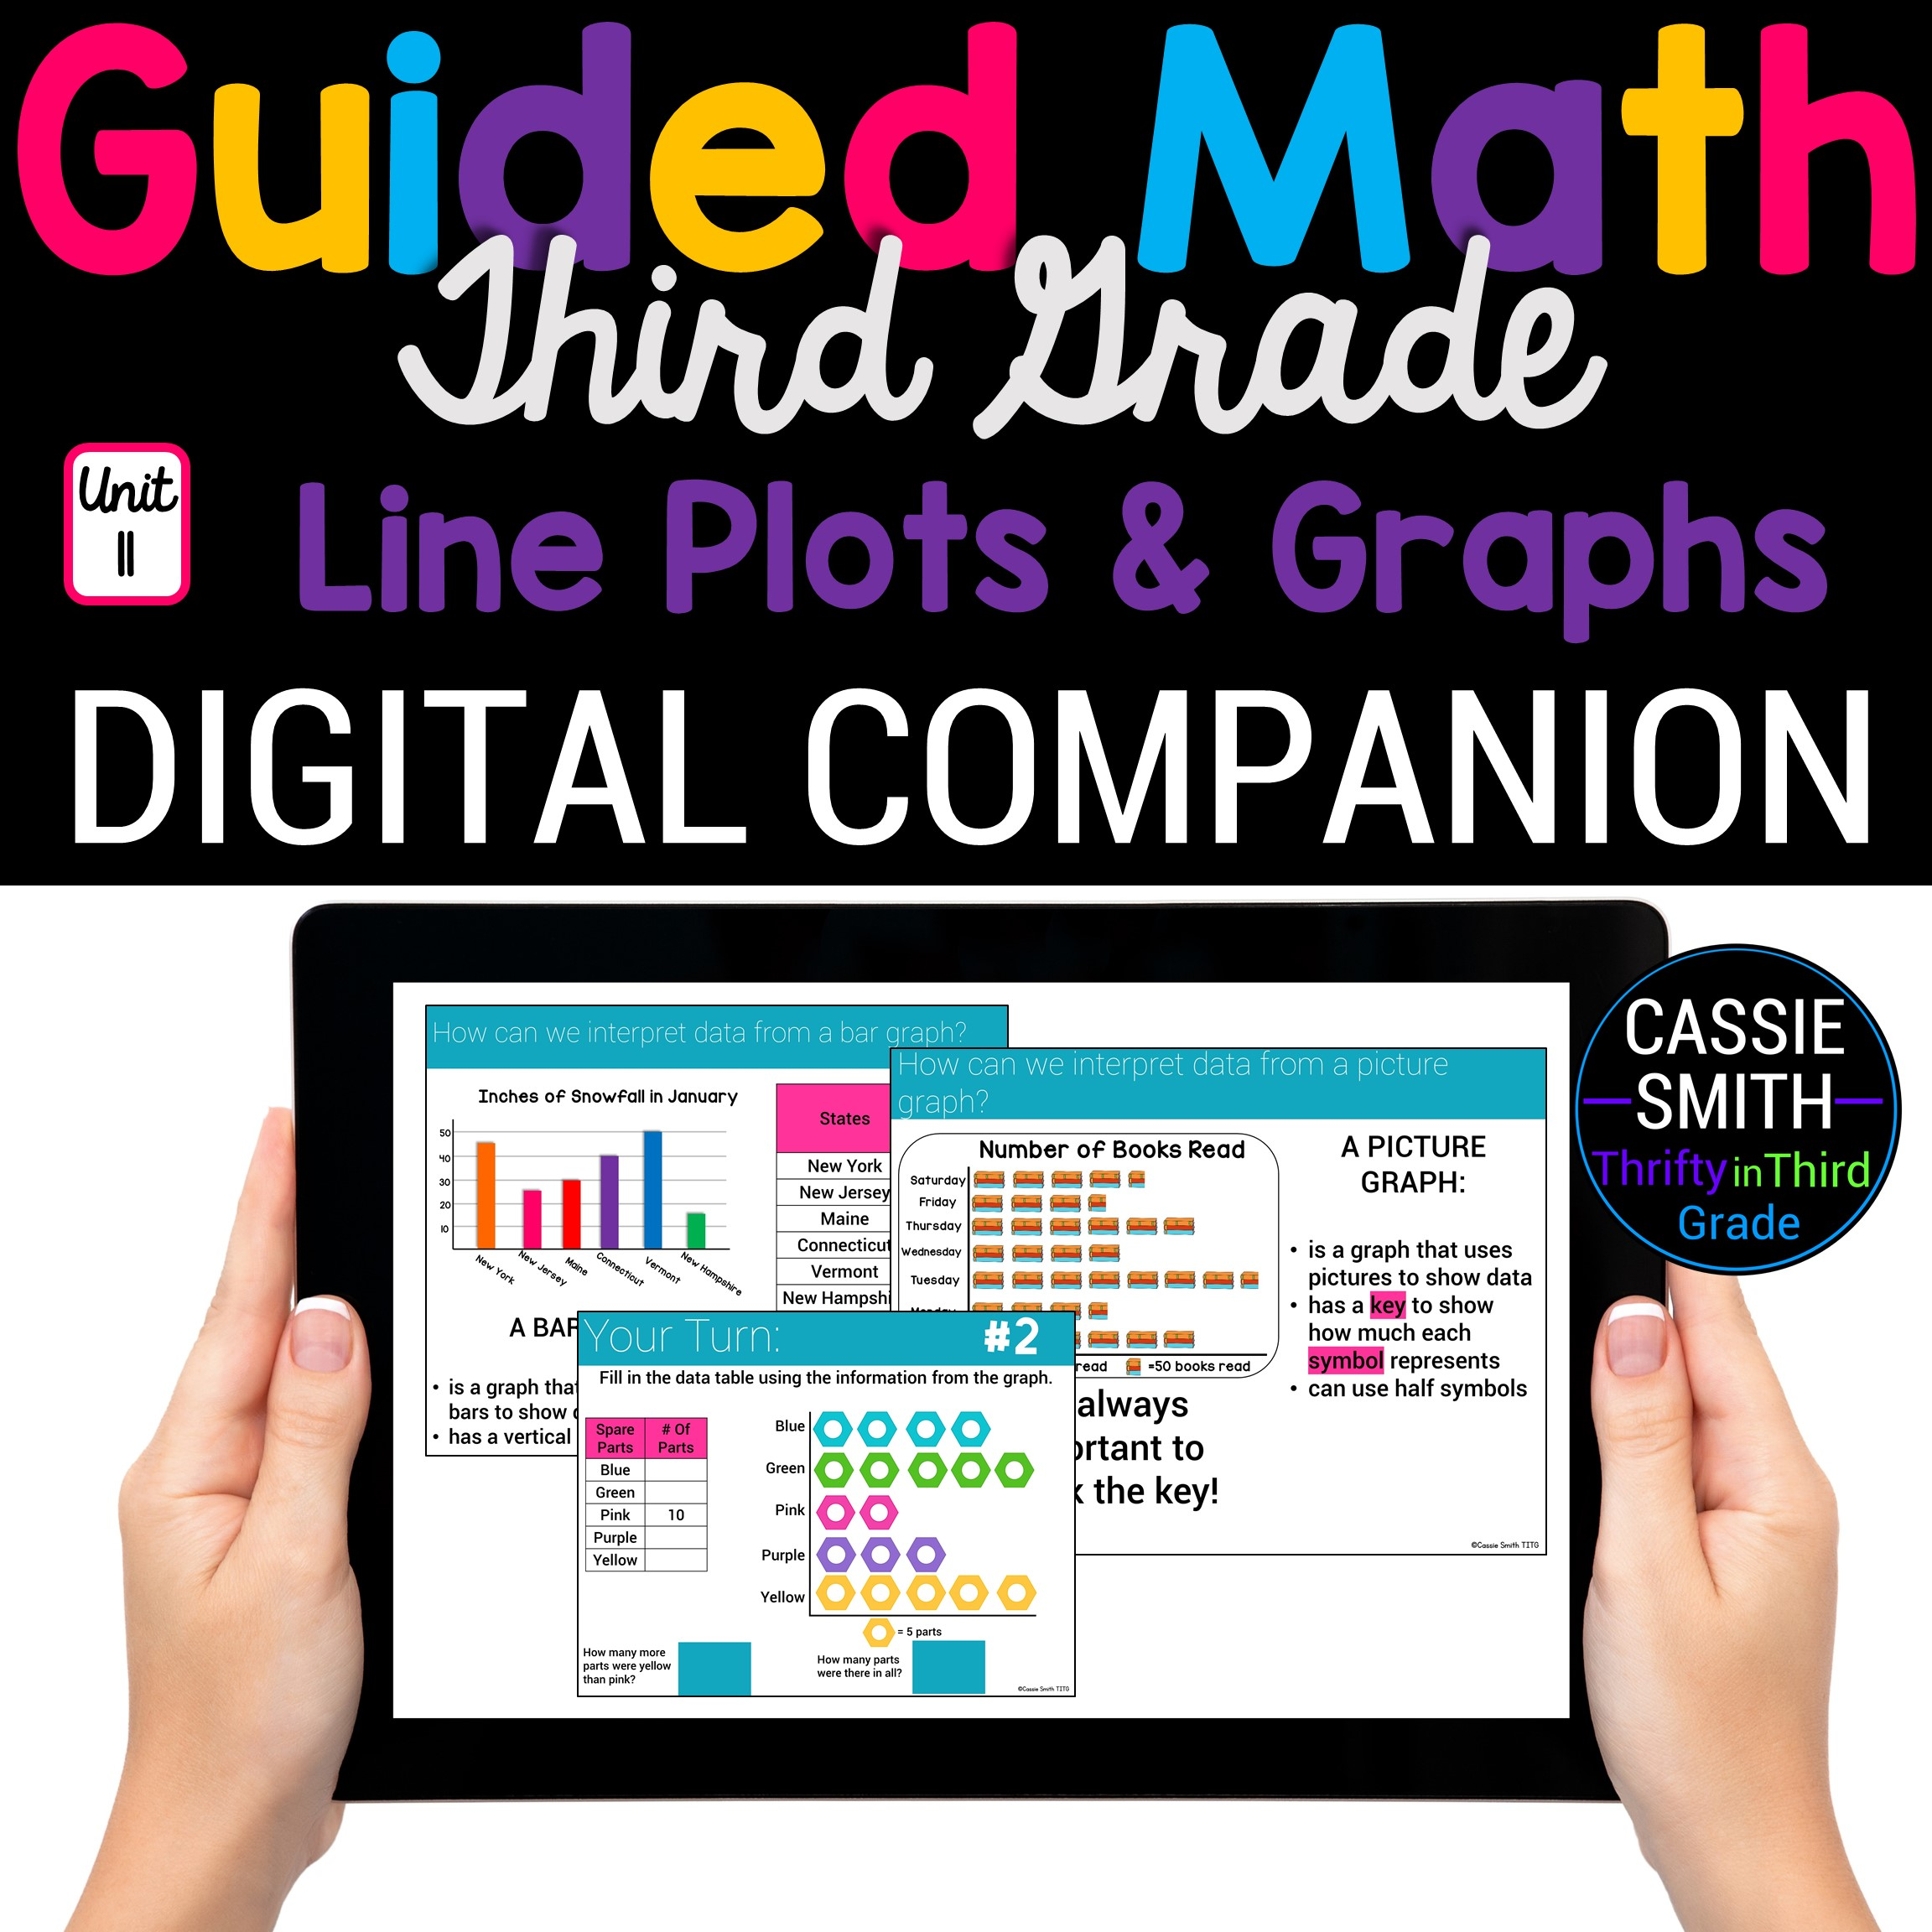 3rd Grade Guided Math Digital Companion Unit 11 Line